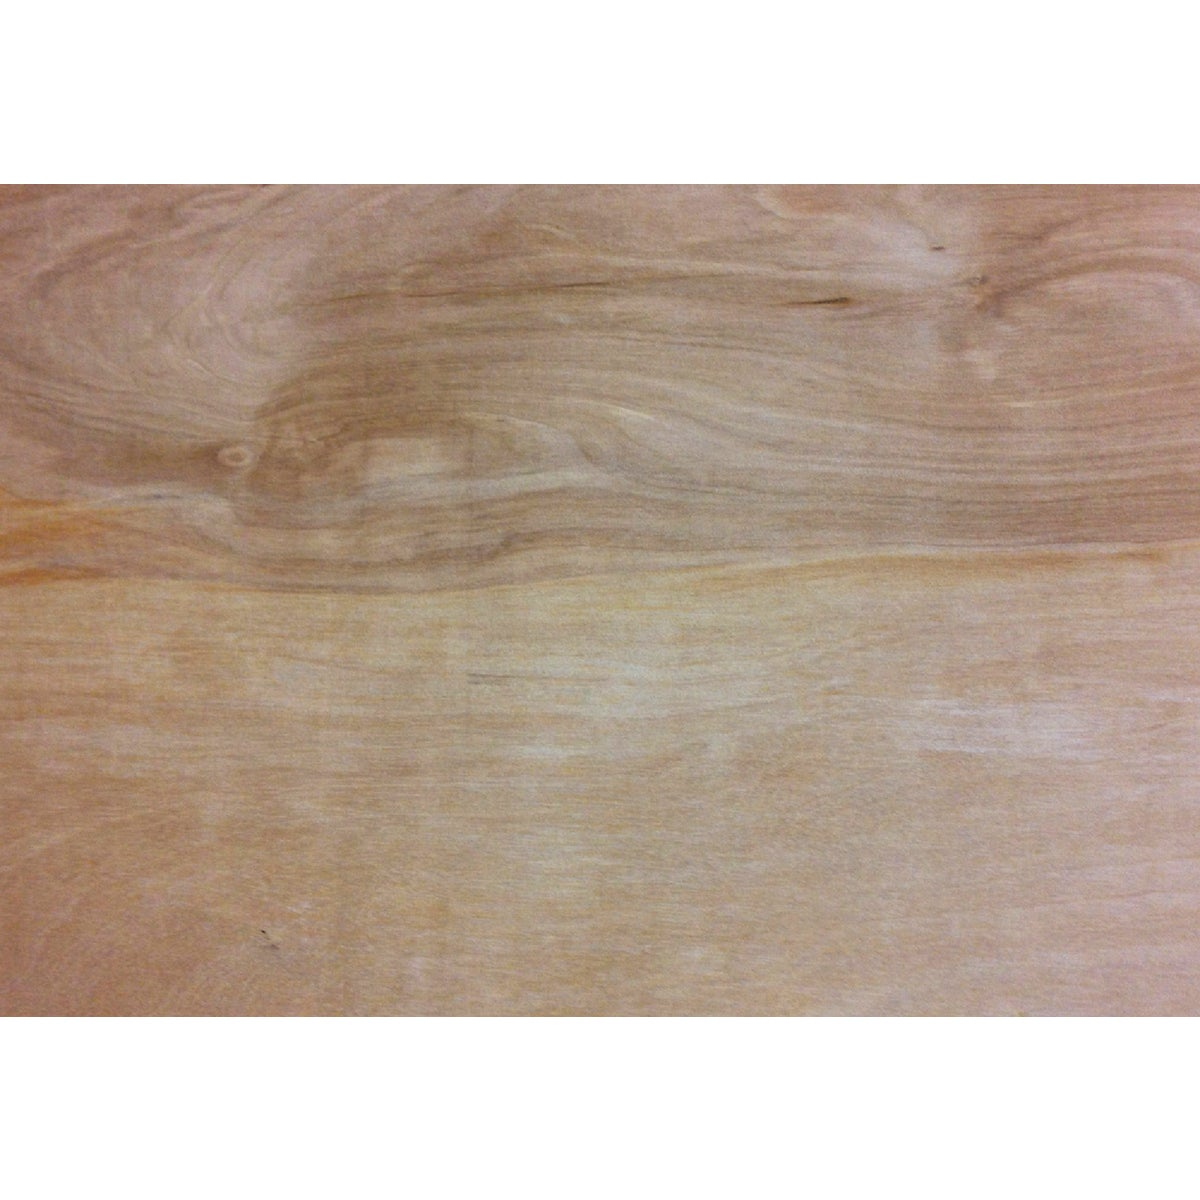 "3/8"" 24X24 BIRCH PLYWOOD"